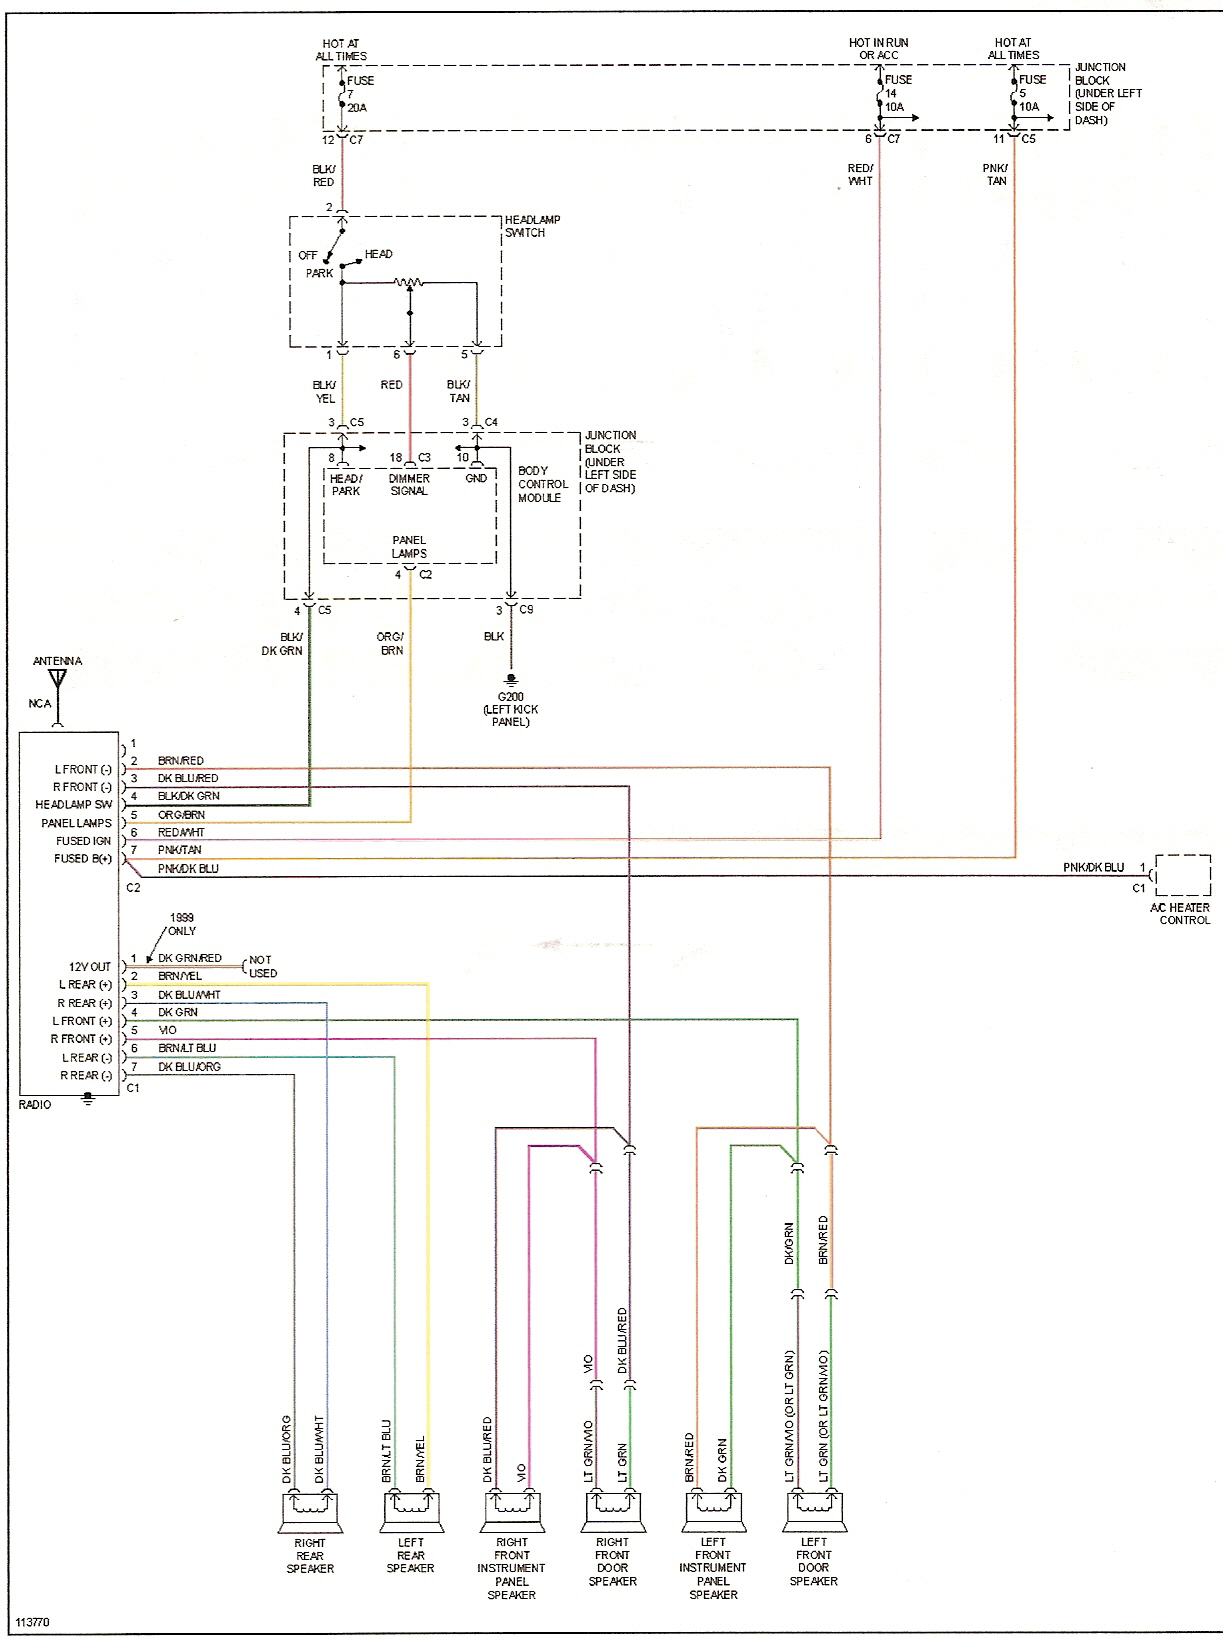 99 Plymouth Voyager Radio Wiring - Diagram Design Sources series-radio -  series-radio.lesmalinspres.fr | Wiring Diagram For 1999 Plymouth Voyager |  | diagram database